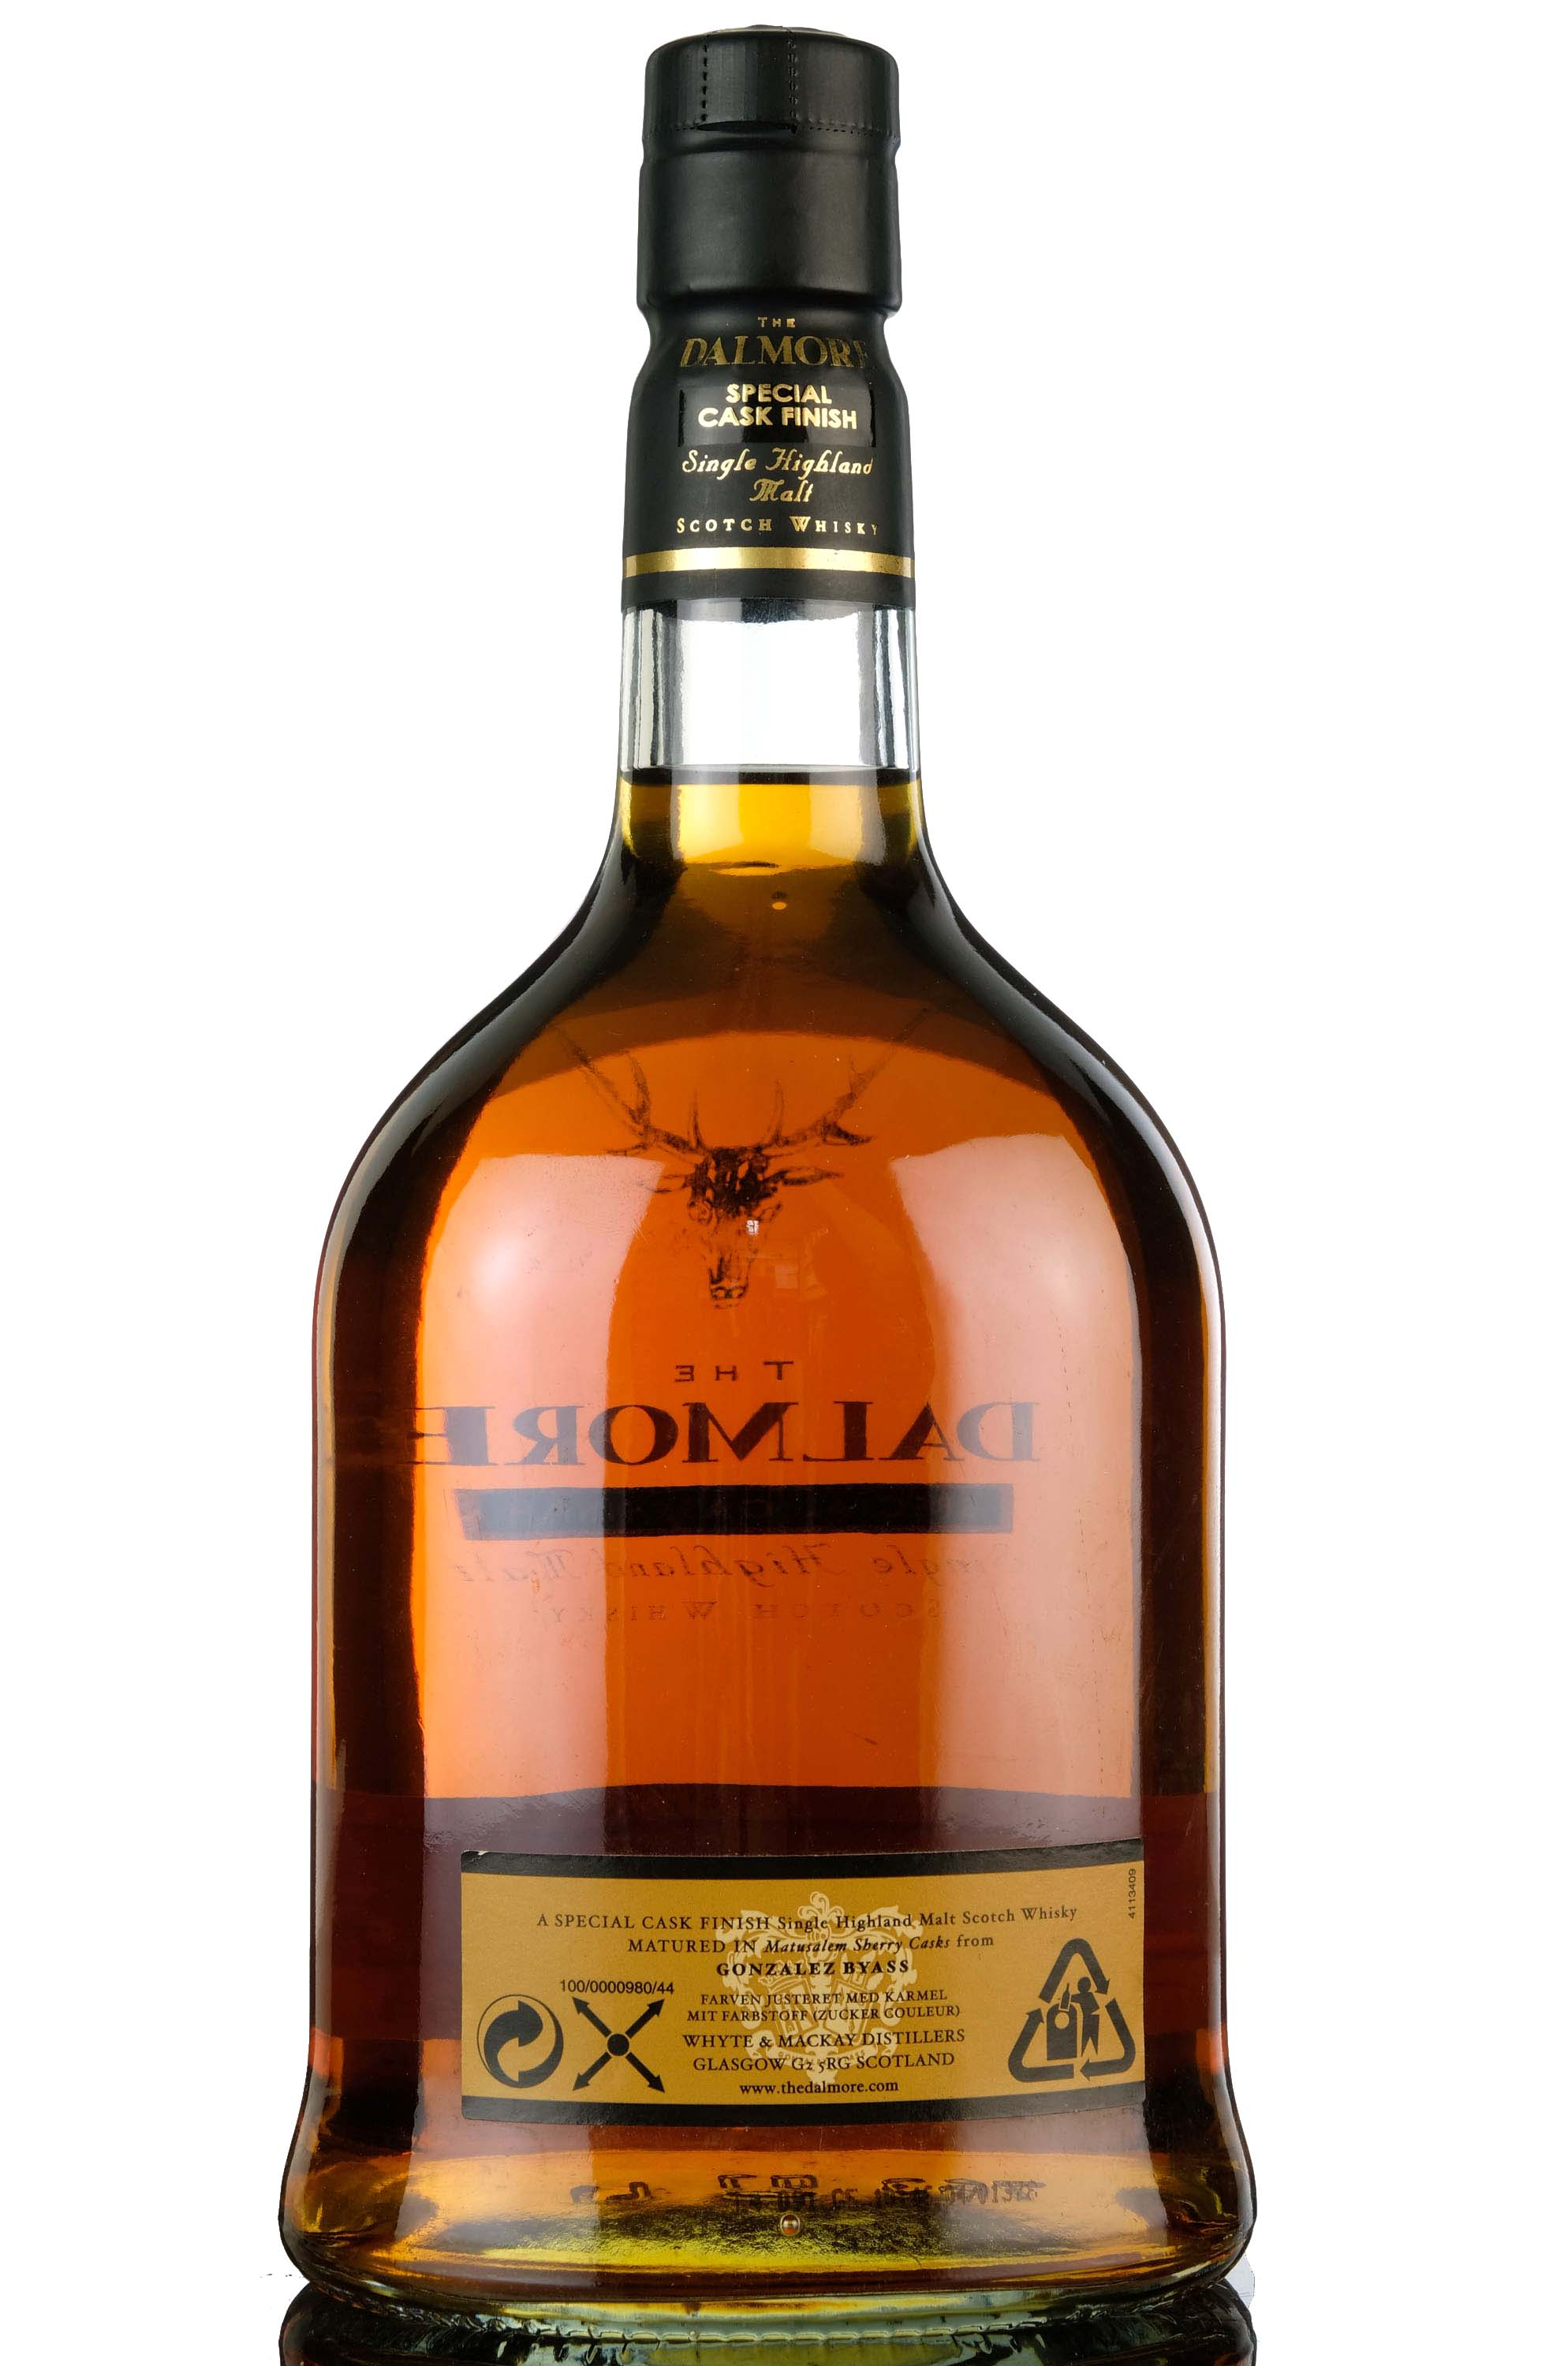 dalmore 1973 - 30 year old - gonzalez byass sherry casks